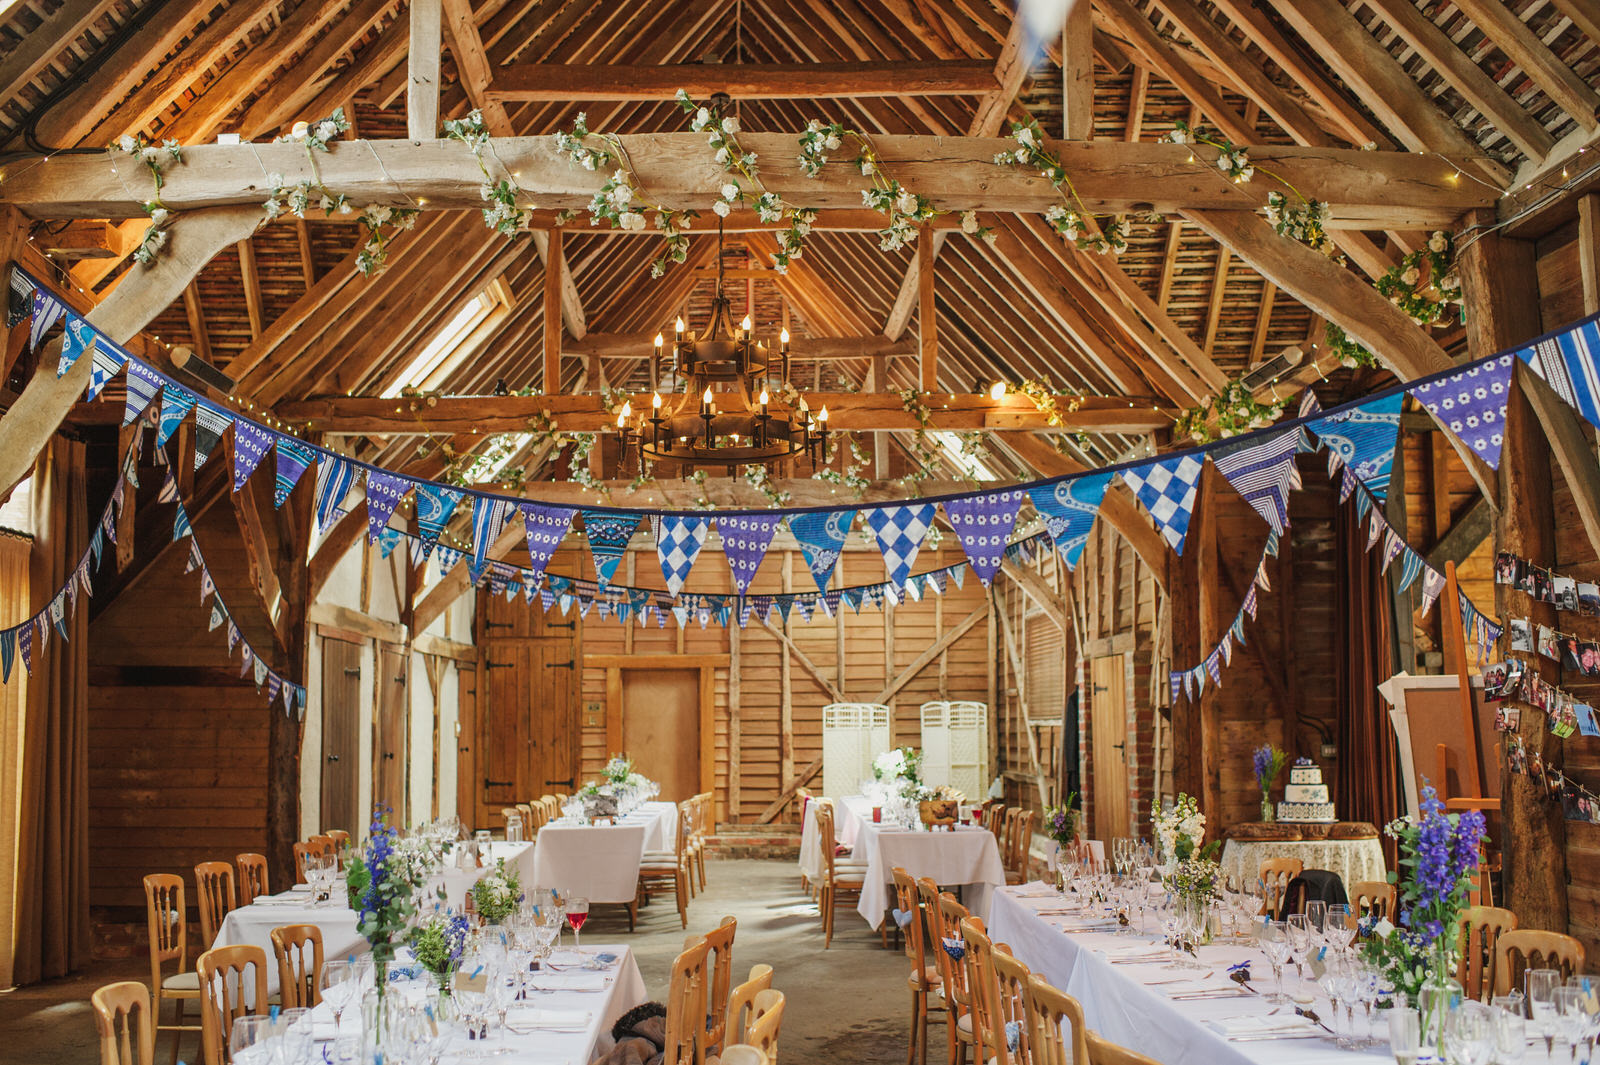 The beautiful and romantic Tythe Barn at Herons Farm